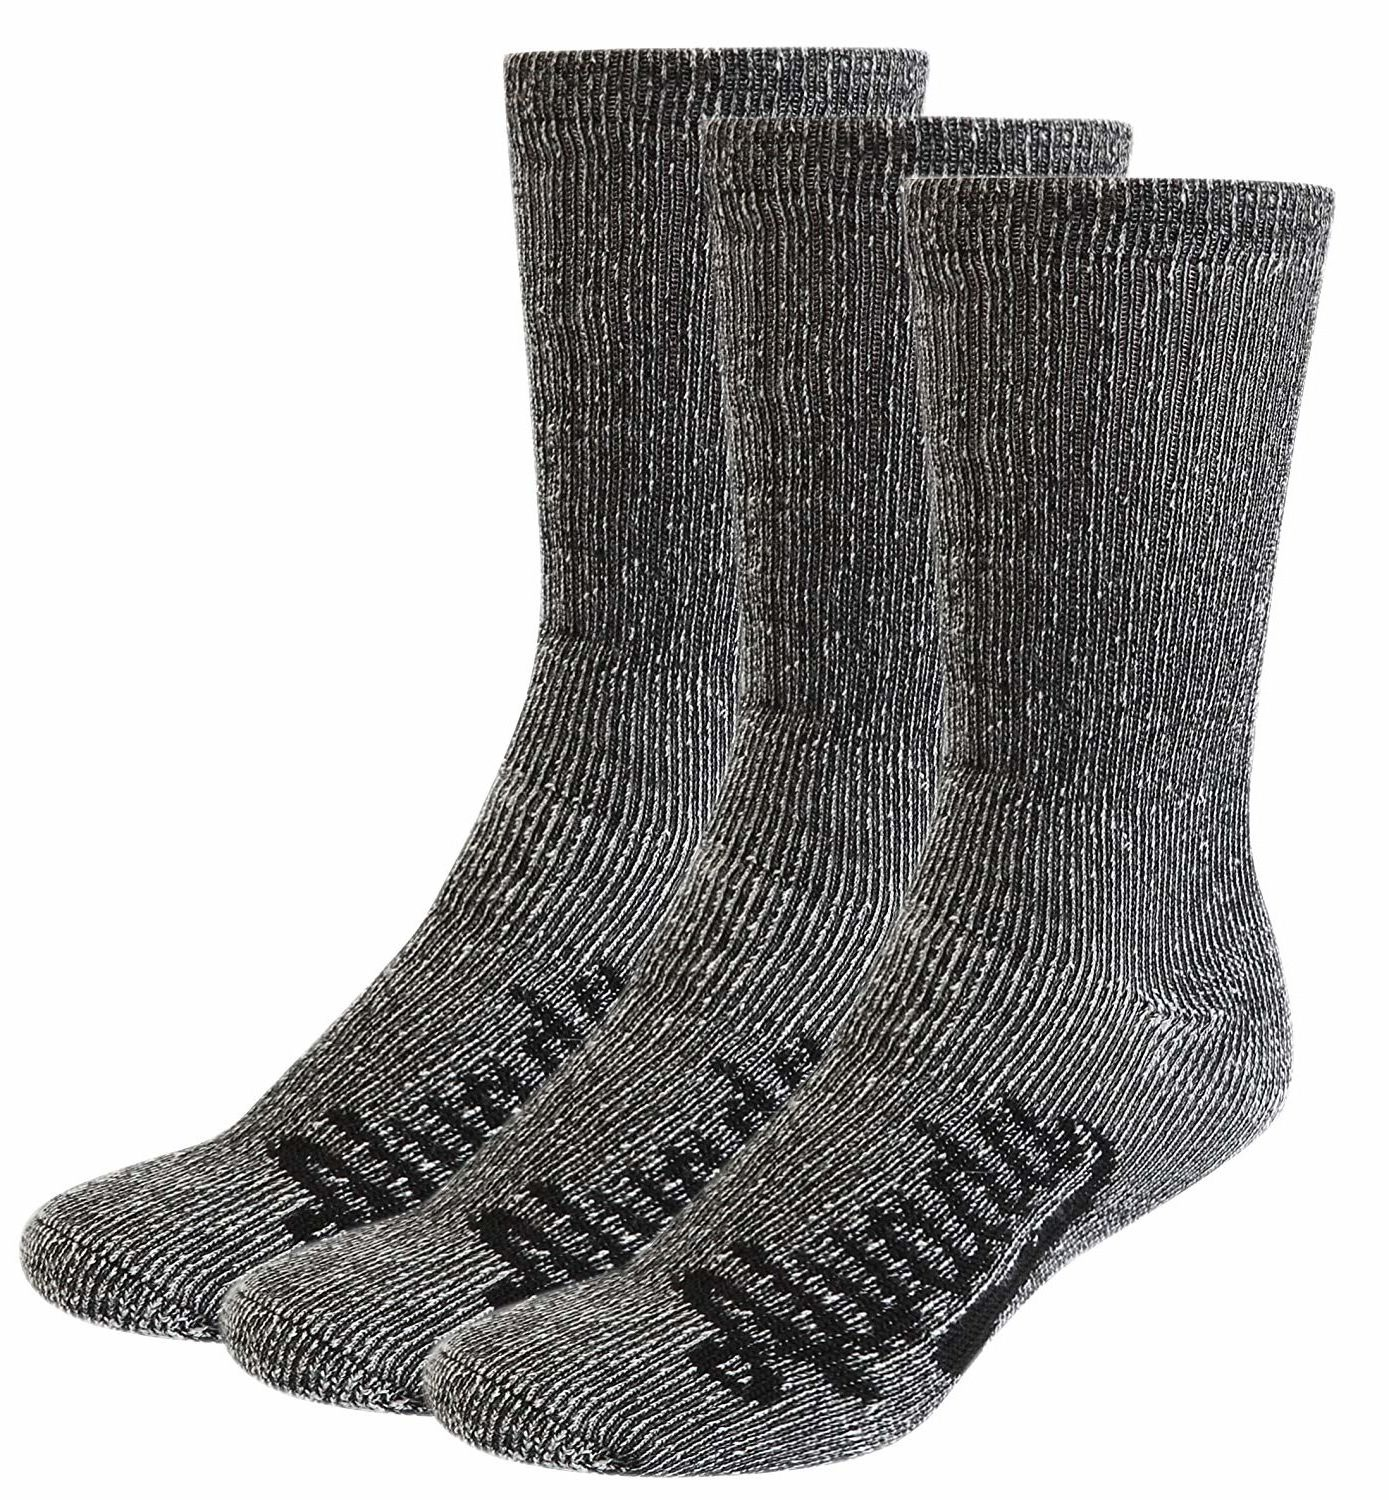 AIvada 80% merino wool hiking and hunting socks for cold weather